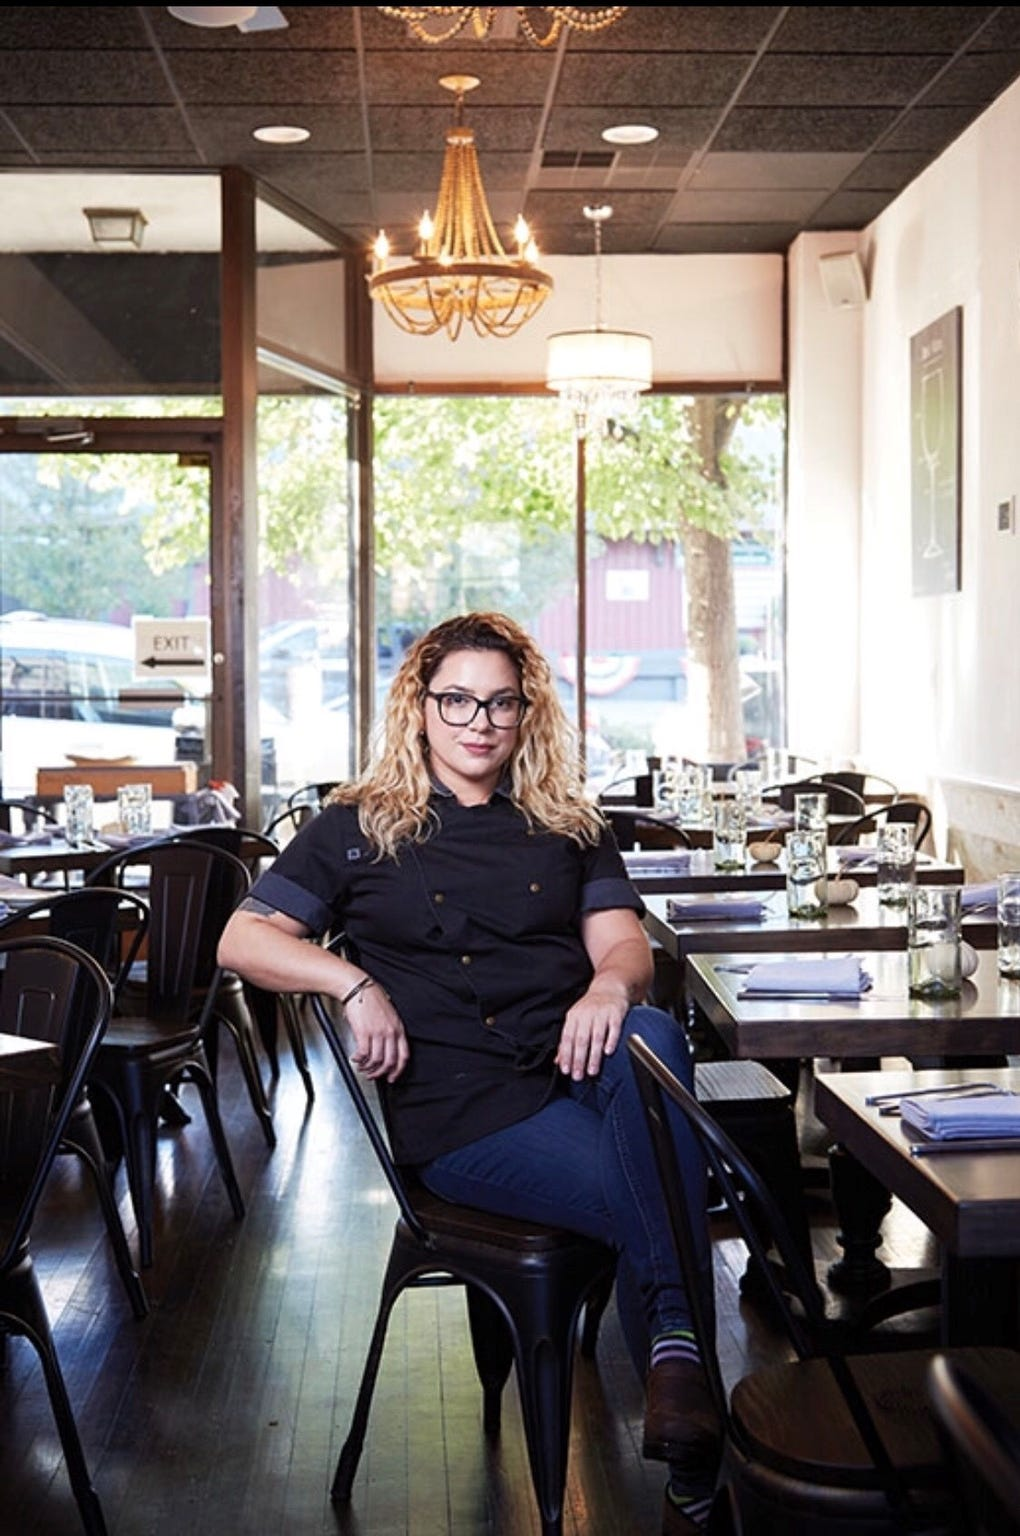 Leia Gaccione, chef of South + Pine in Morristown and Central + Main in Madison.